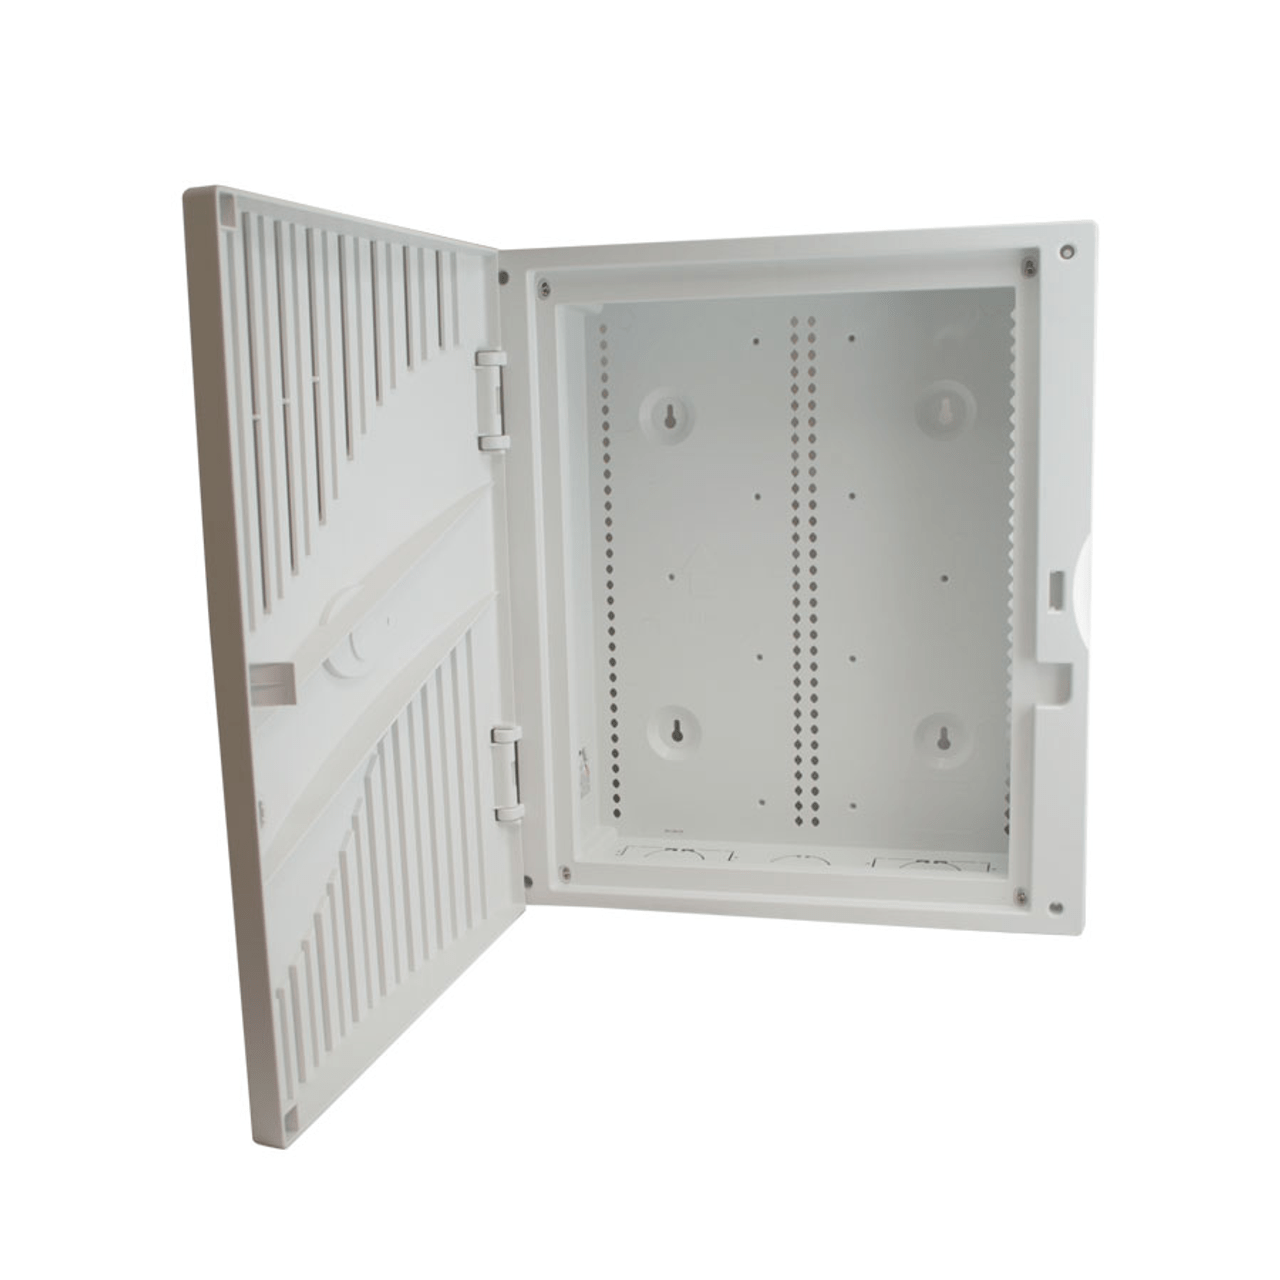 hight resolution of hcc 18 kit ecpl 18 plastic in wall or on wall structured wiring enclosure